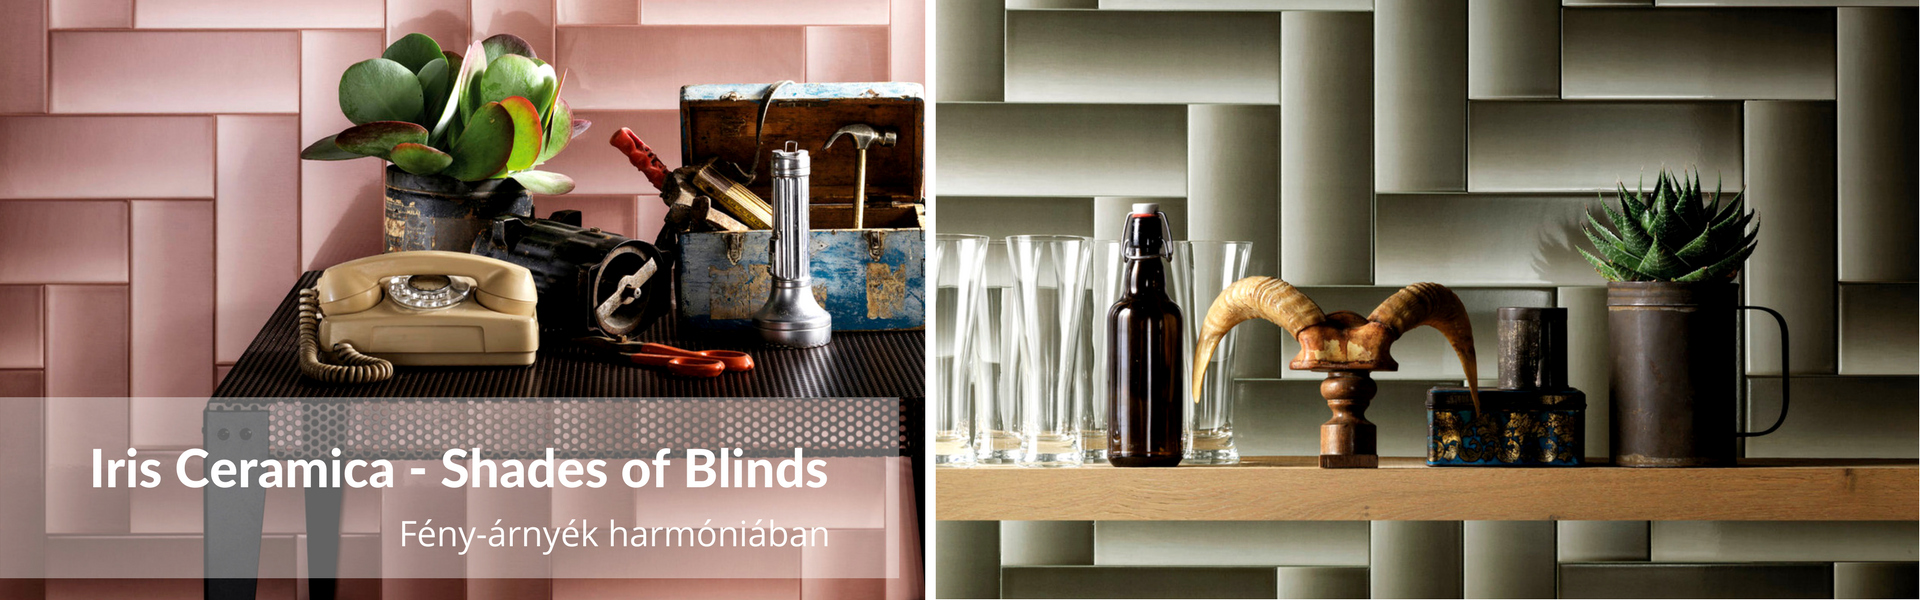 iris shades of blinds, burkolat, rokfort home